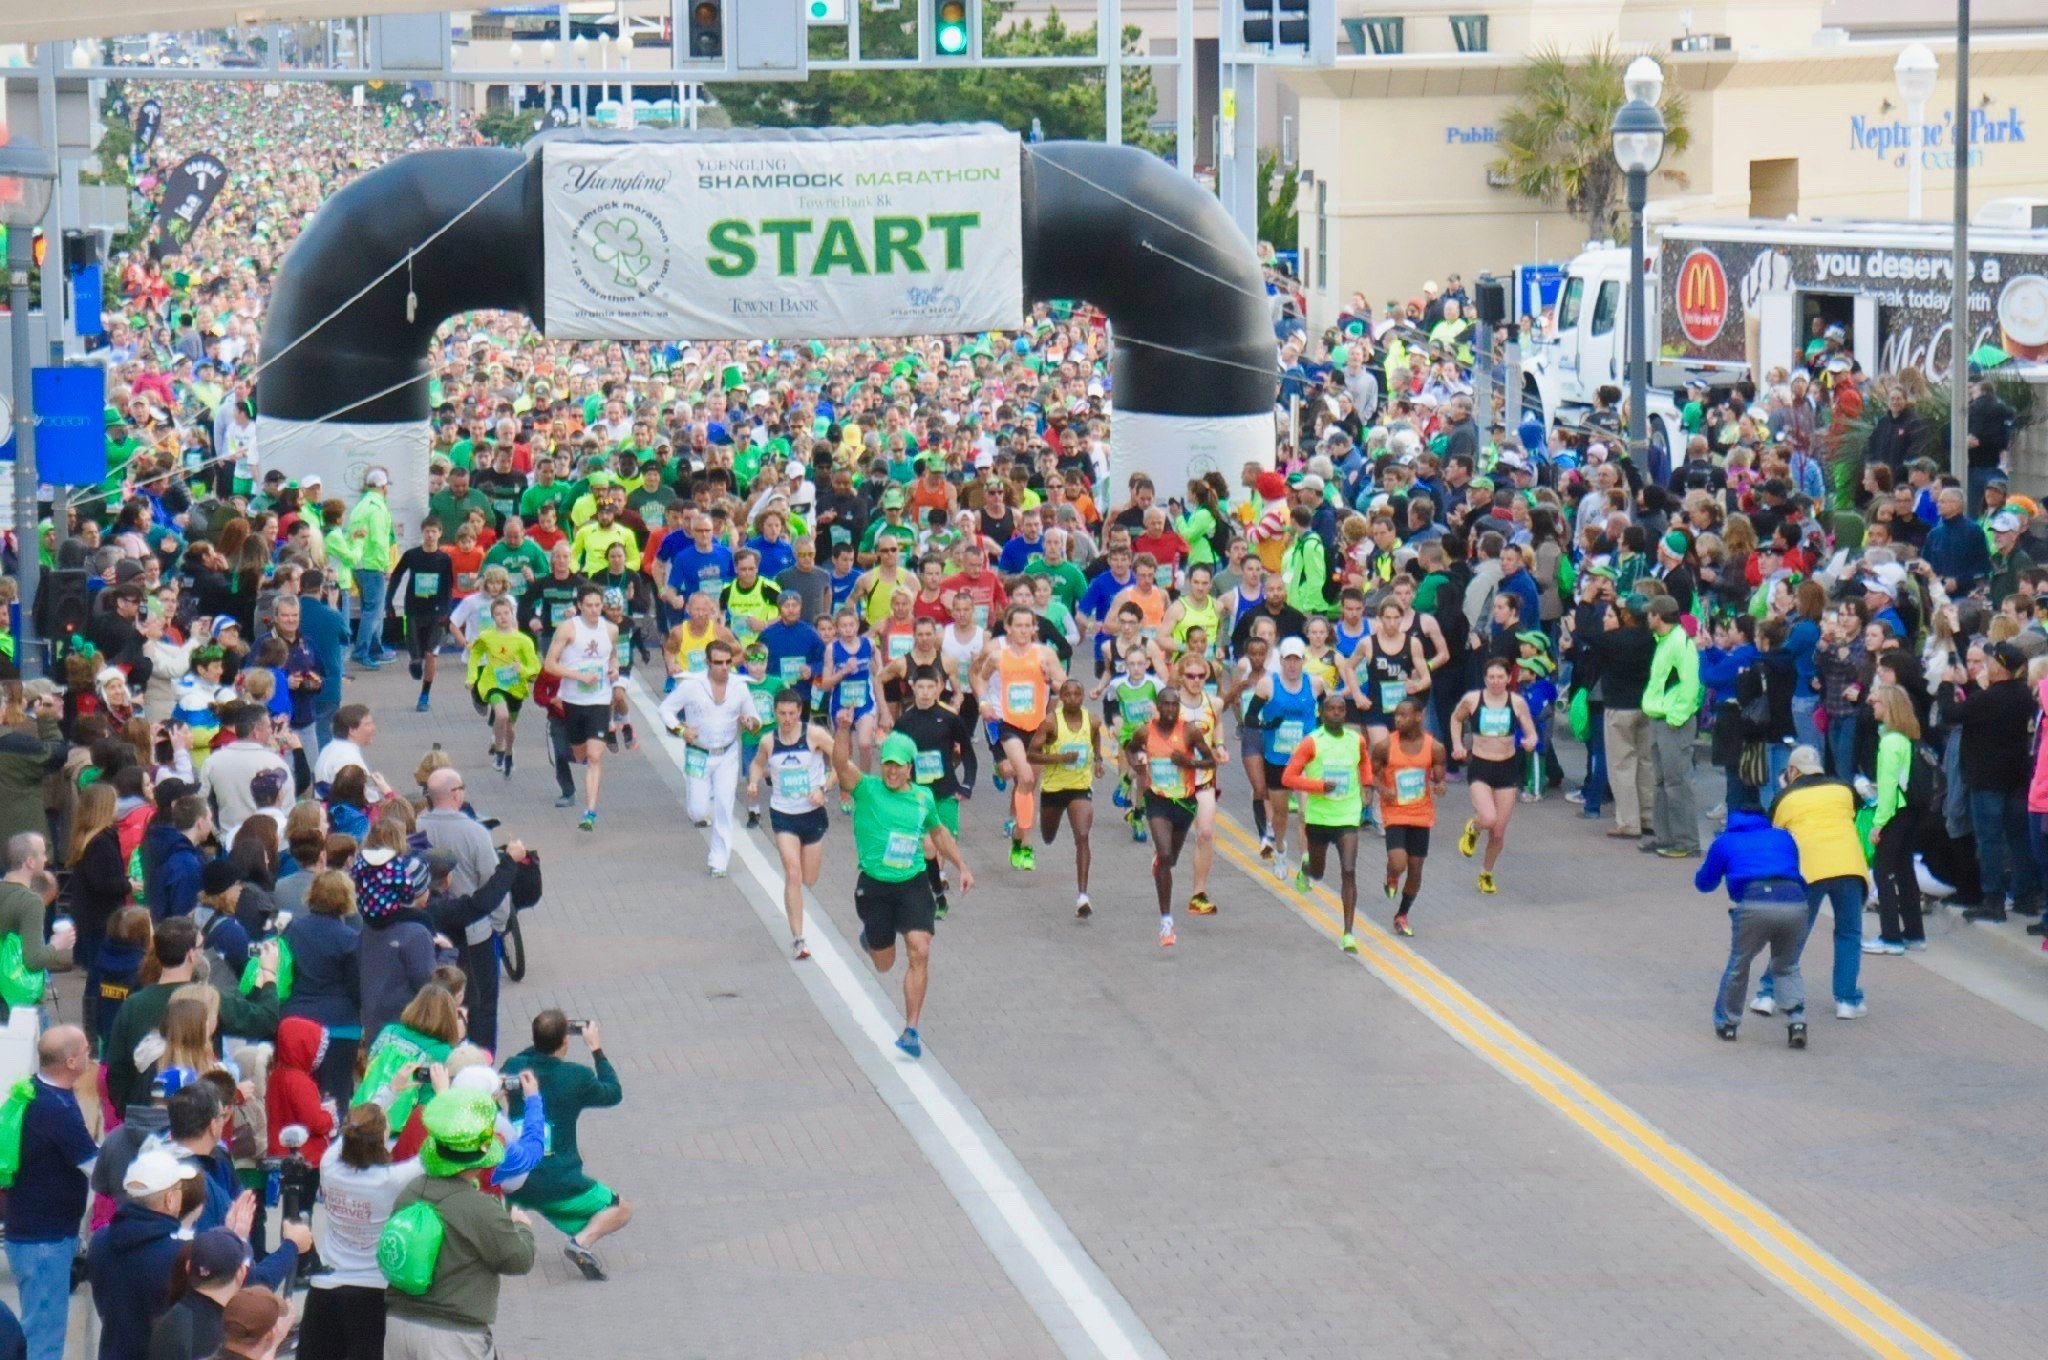 2021 Shamrock Marathon was a success but with most runners participating virtually